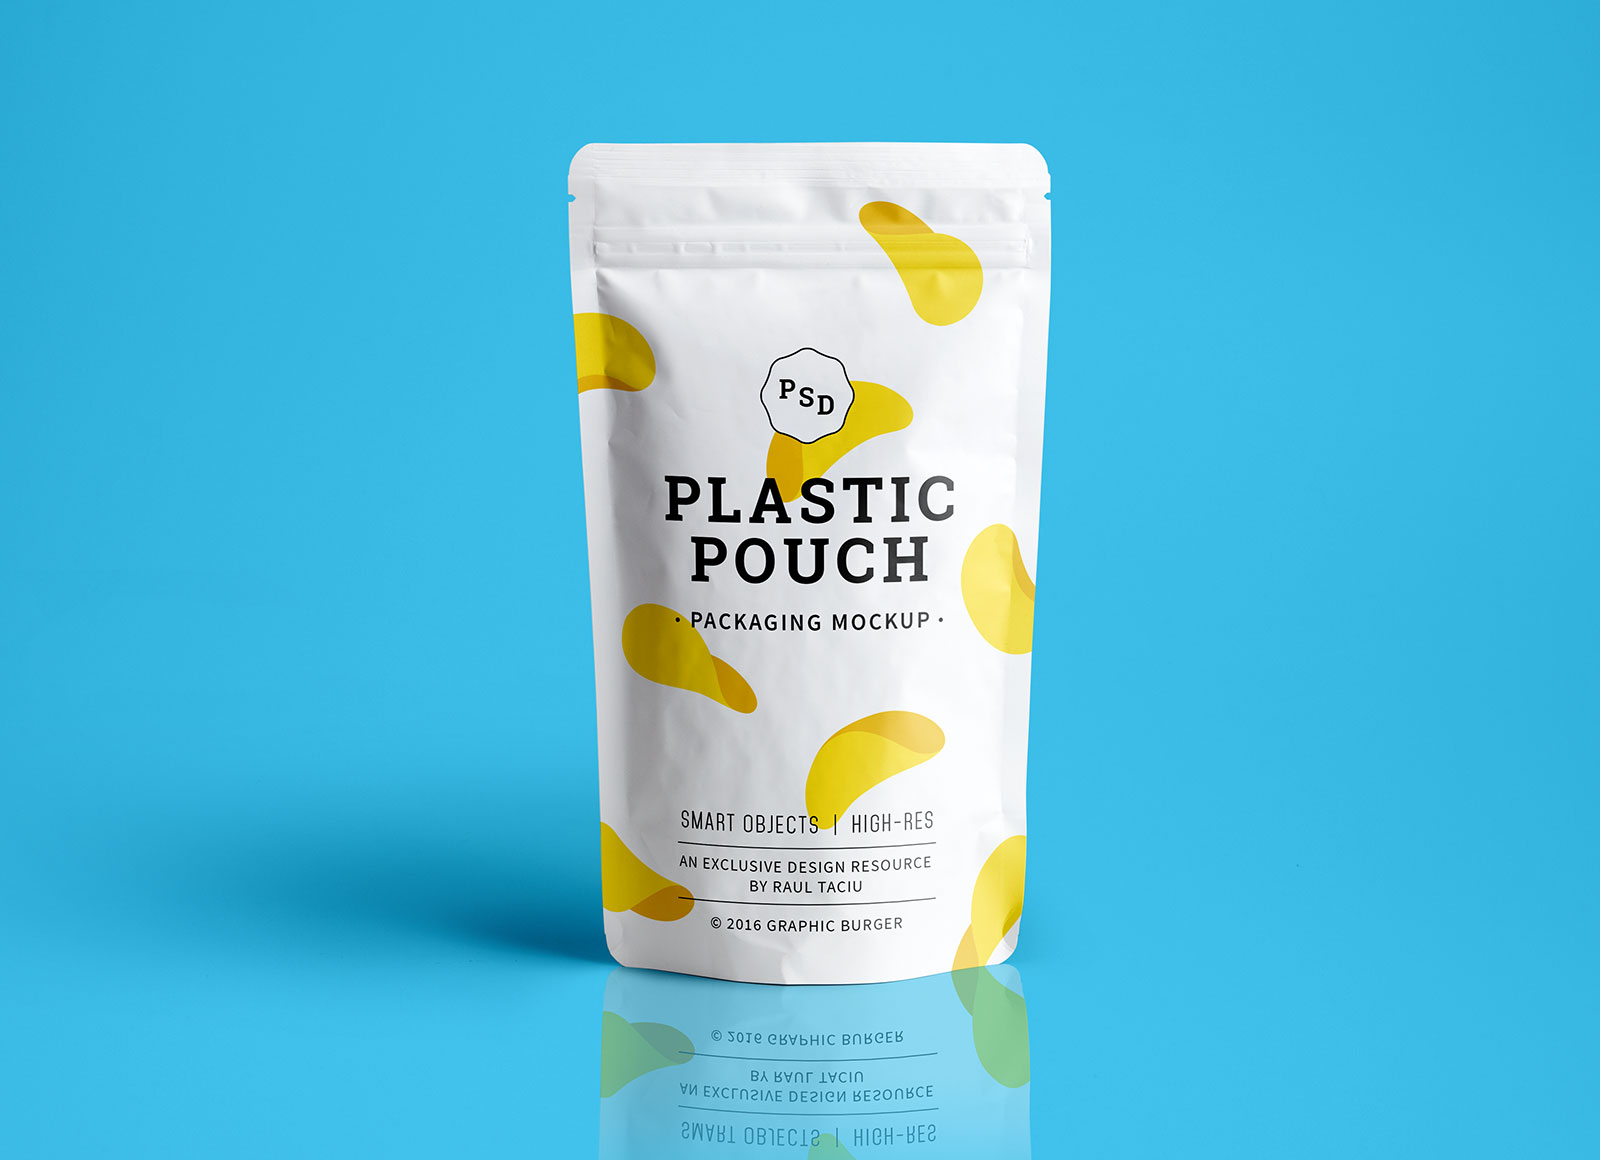 Free-Standing-Plastic-Pouch-Packaging-Mockup-PSD